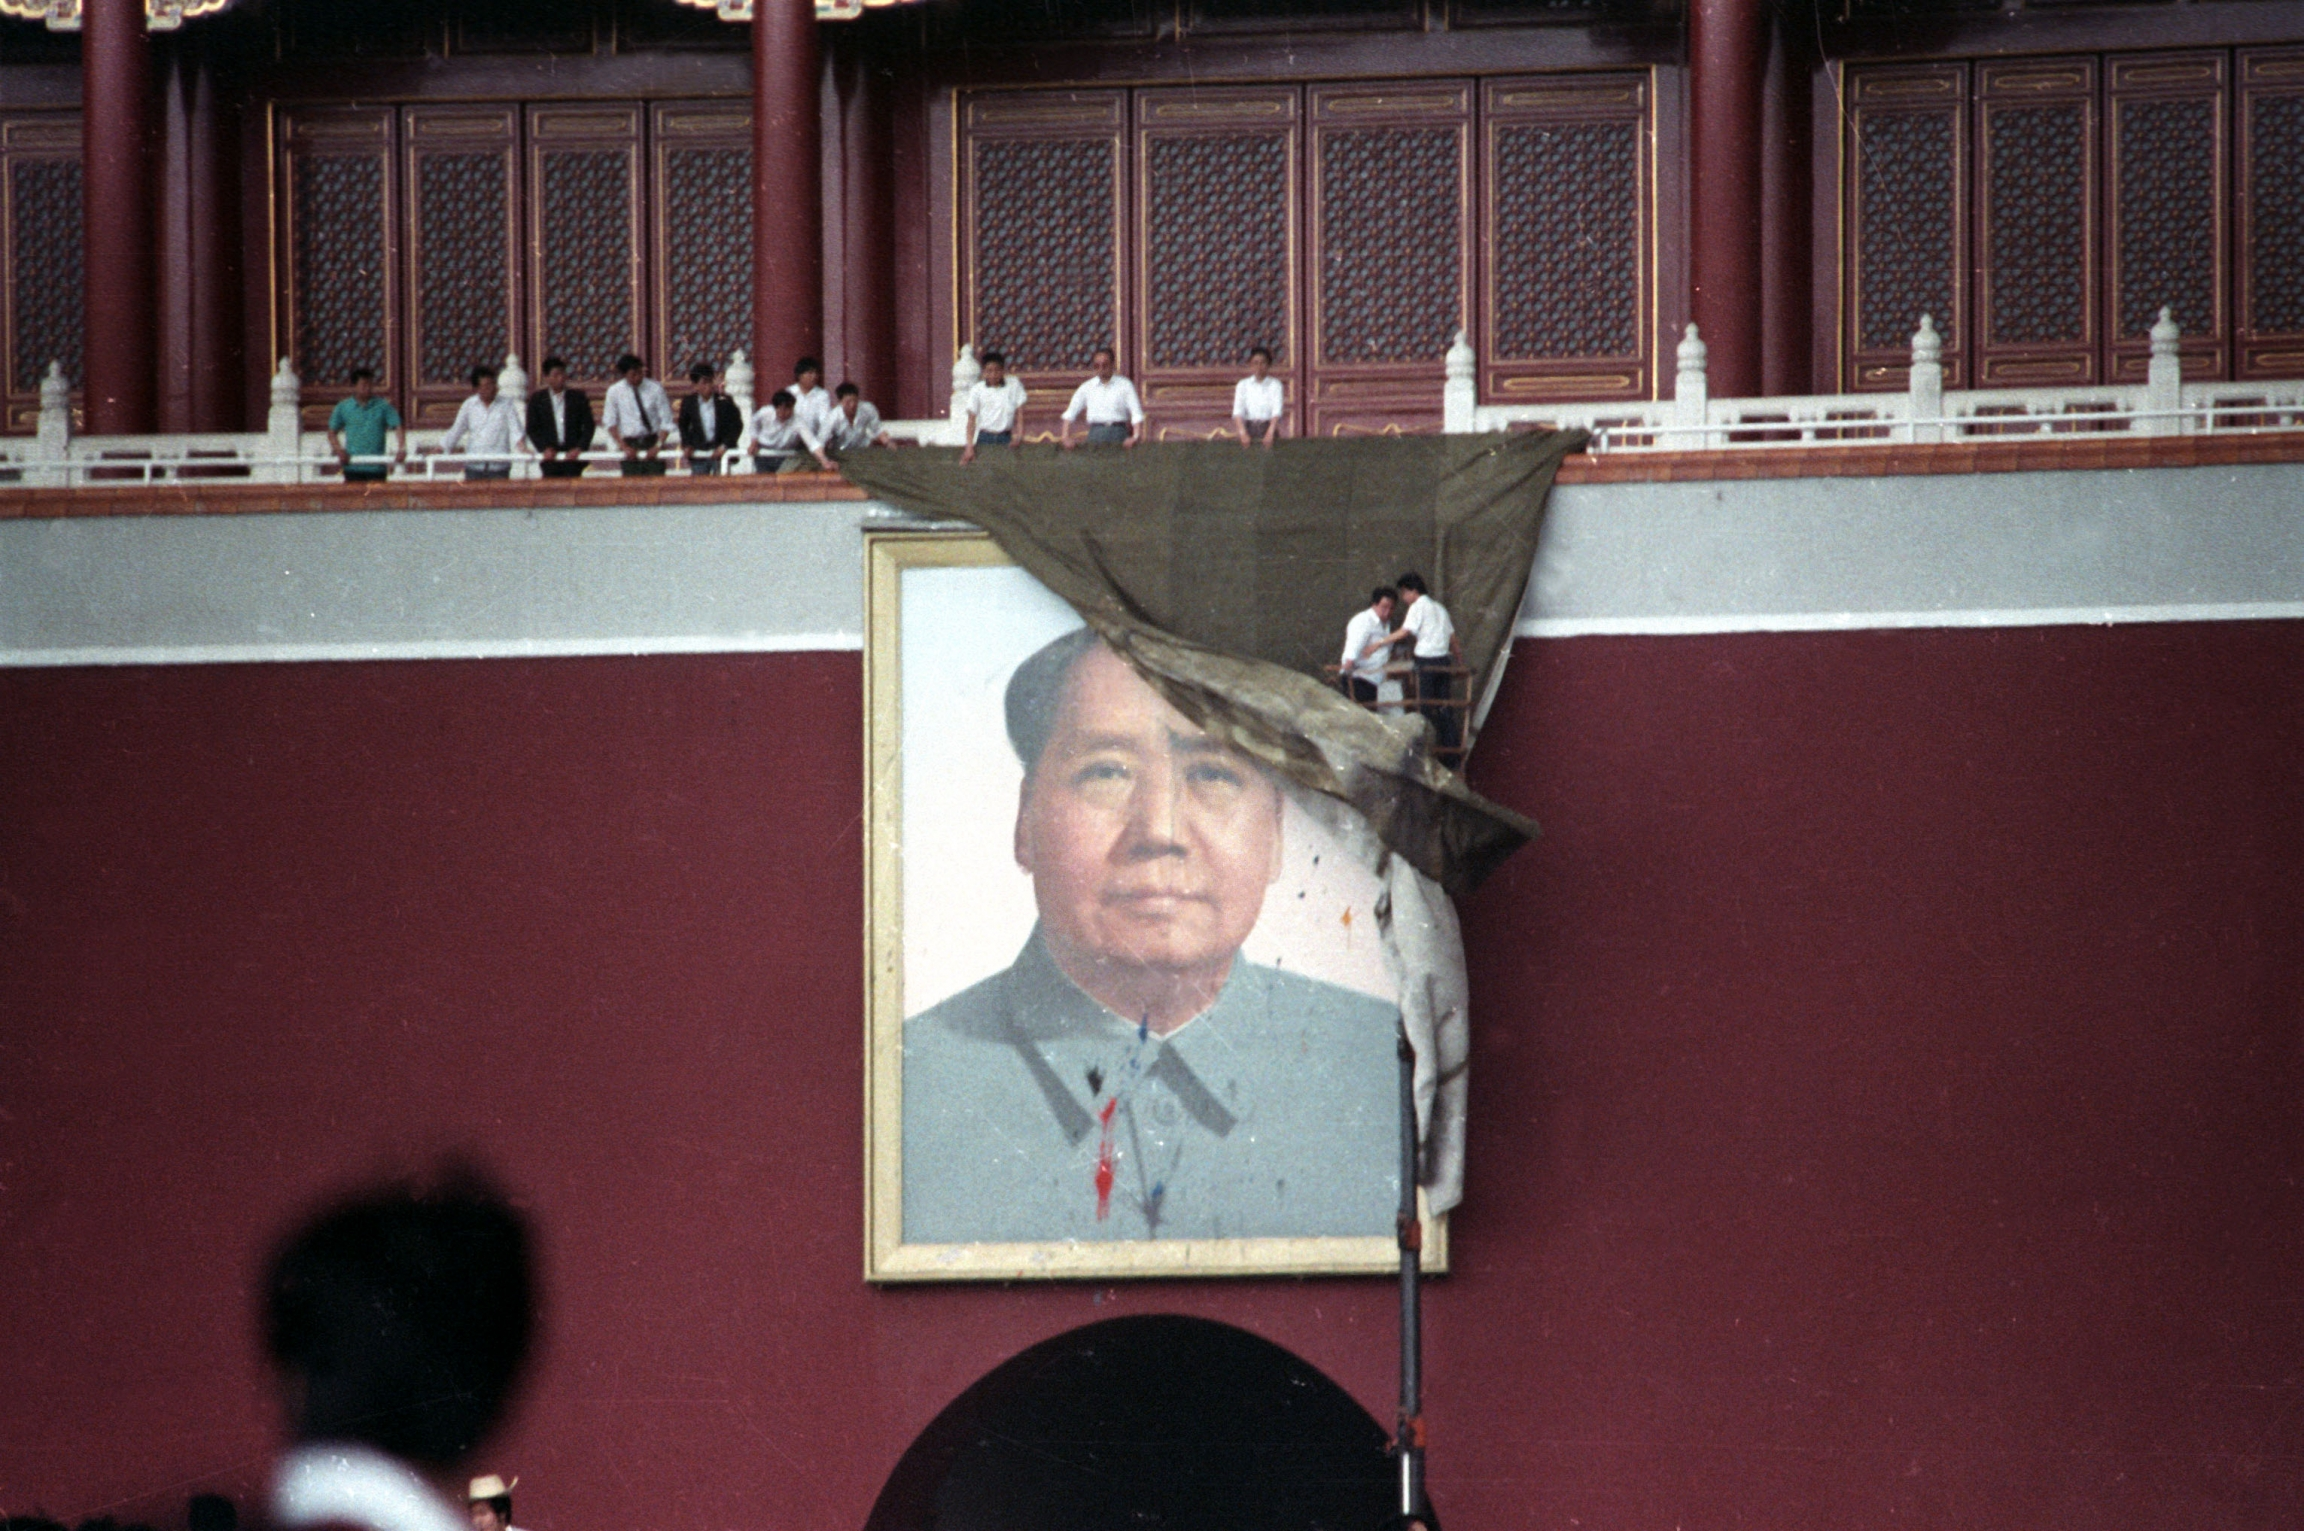 A portrait of Chairman Mao is covered.